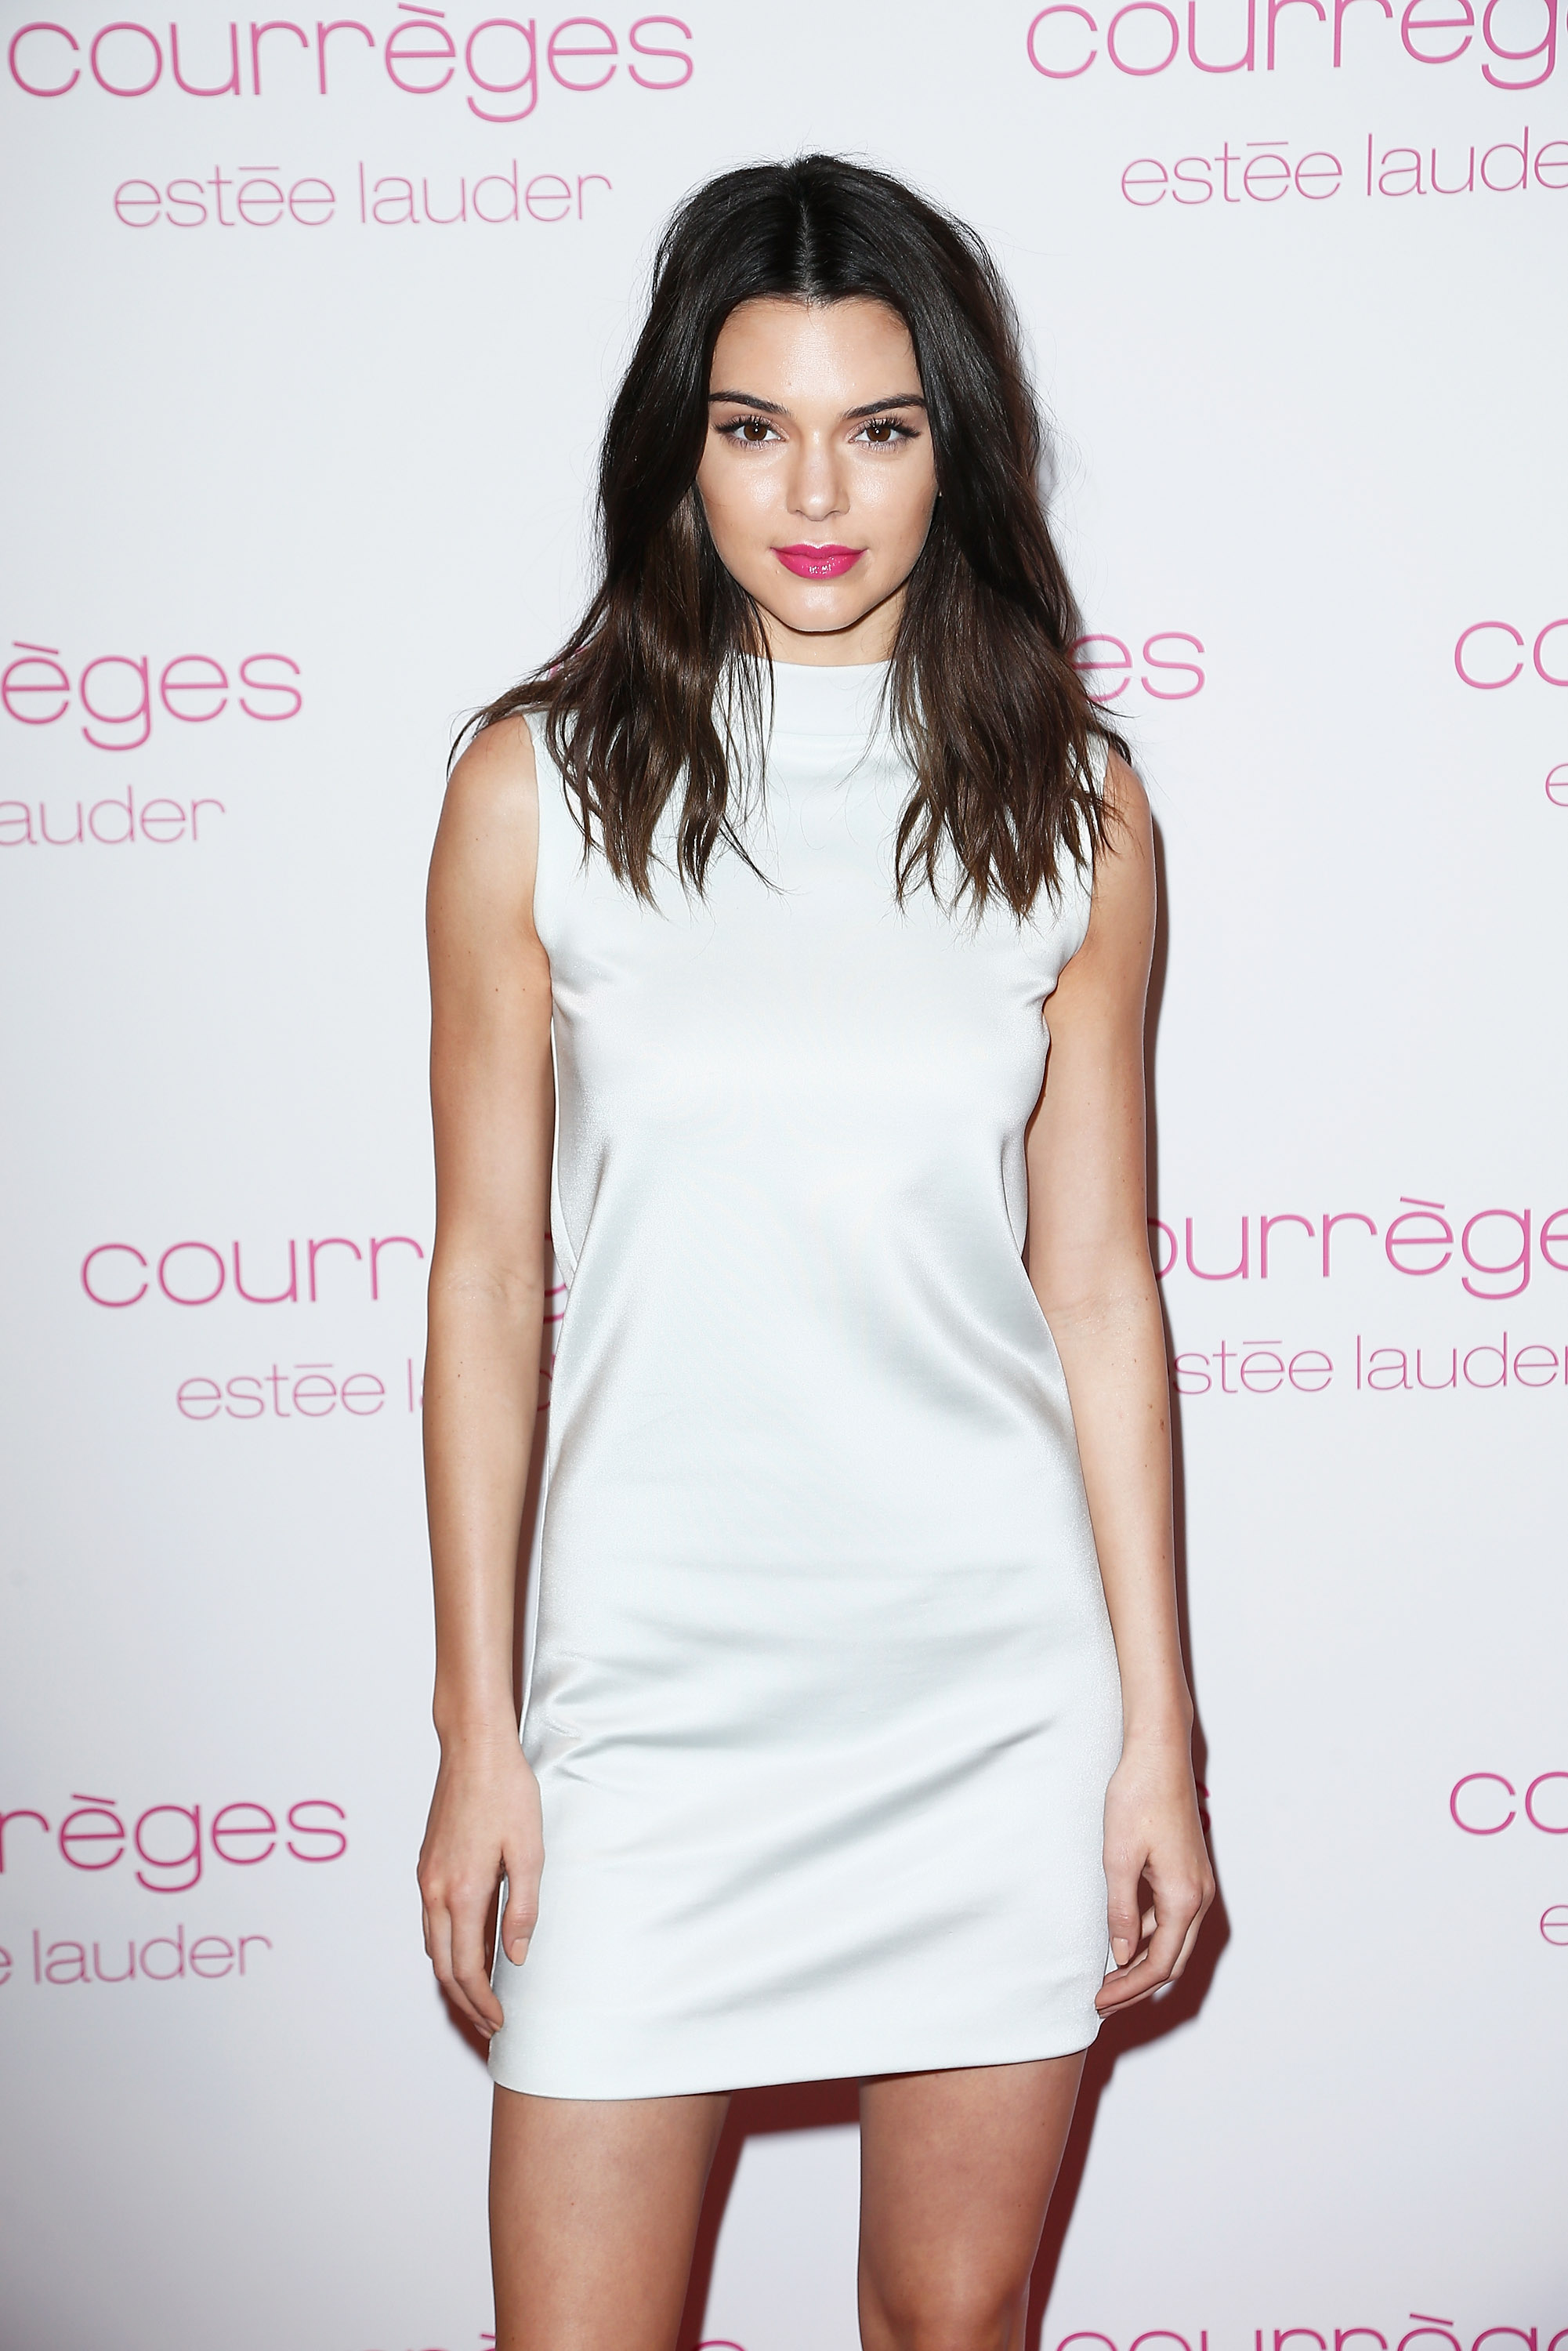 Kendall Jenner attends Courreges and Estee Lauder Dinner Party during Paris Fashion Week Womenswear Fall/Winter 2015/2016 on March 7, 2015 in Paris, France.